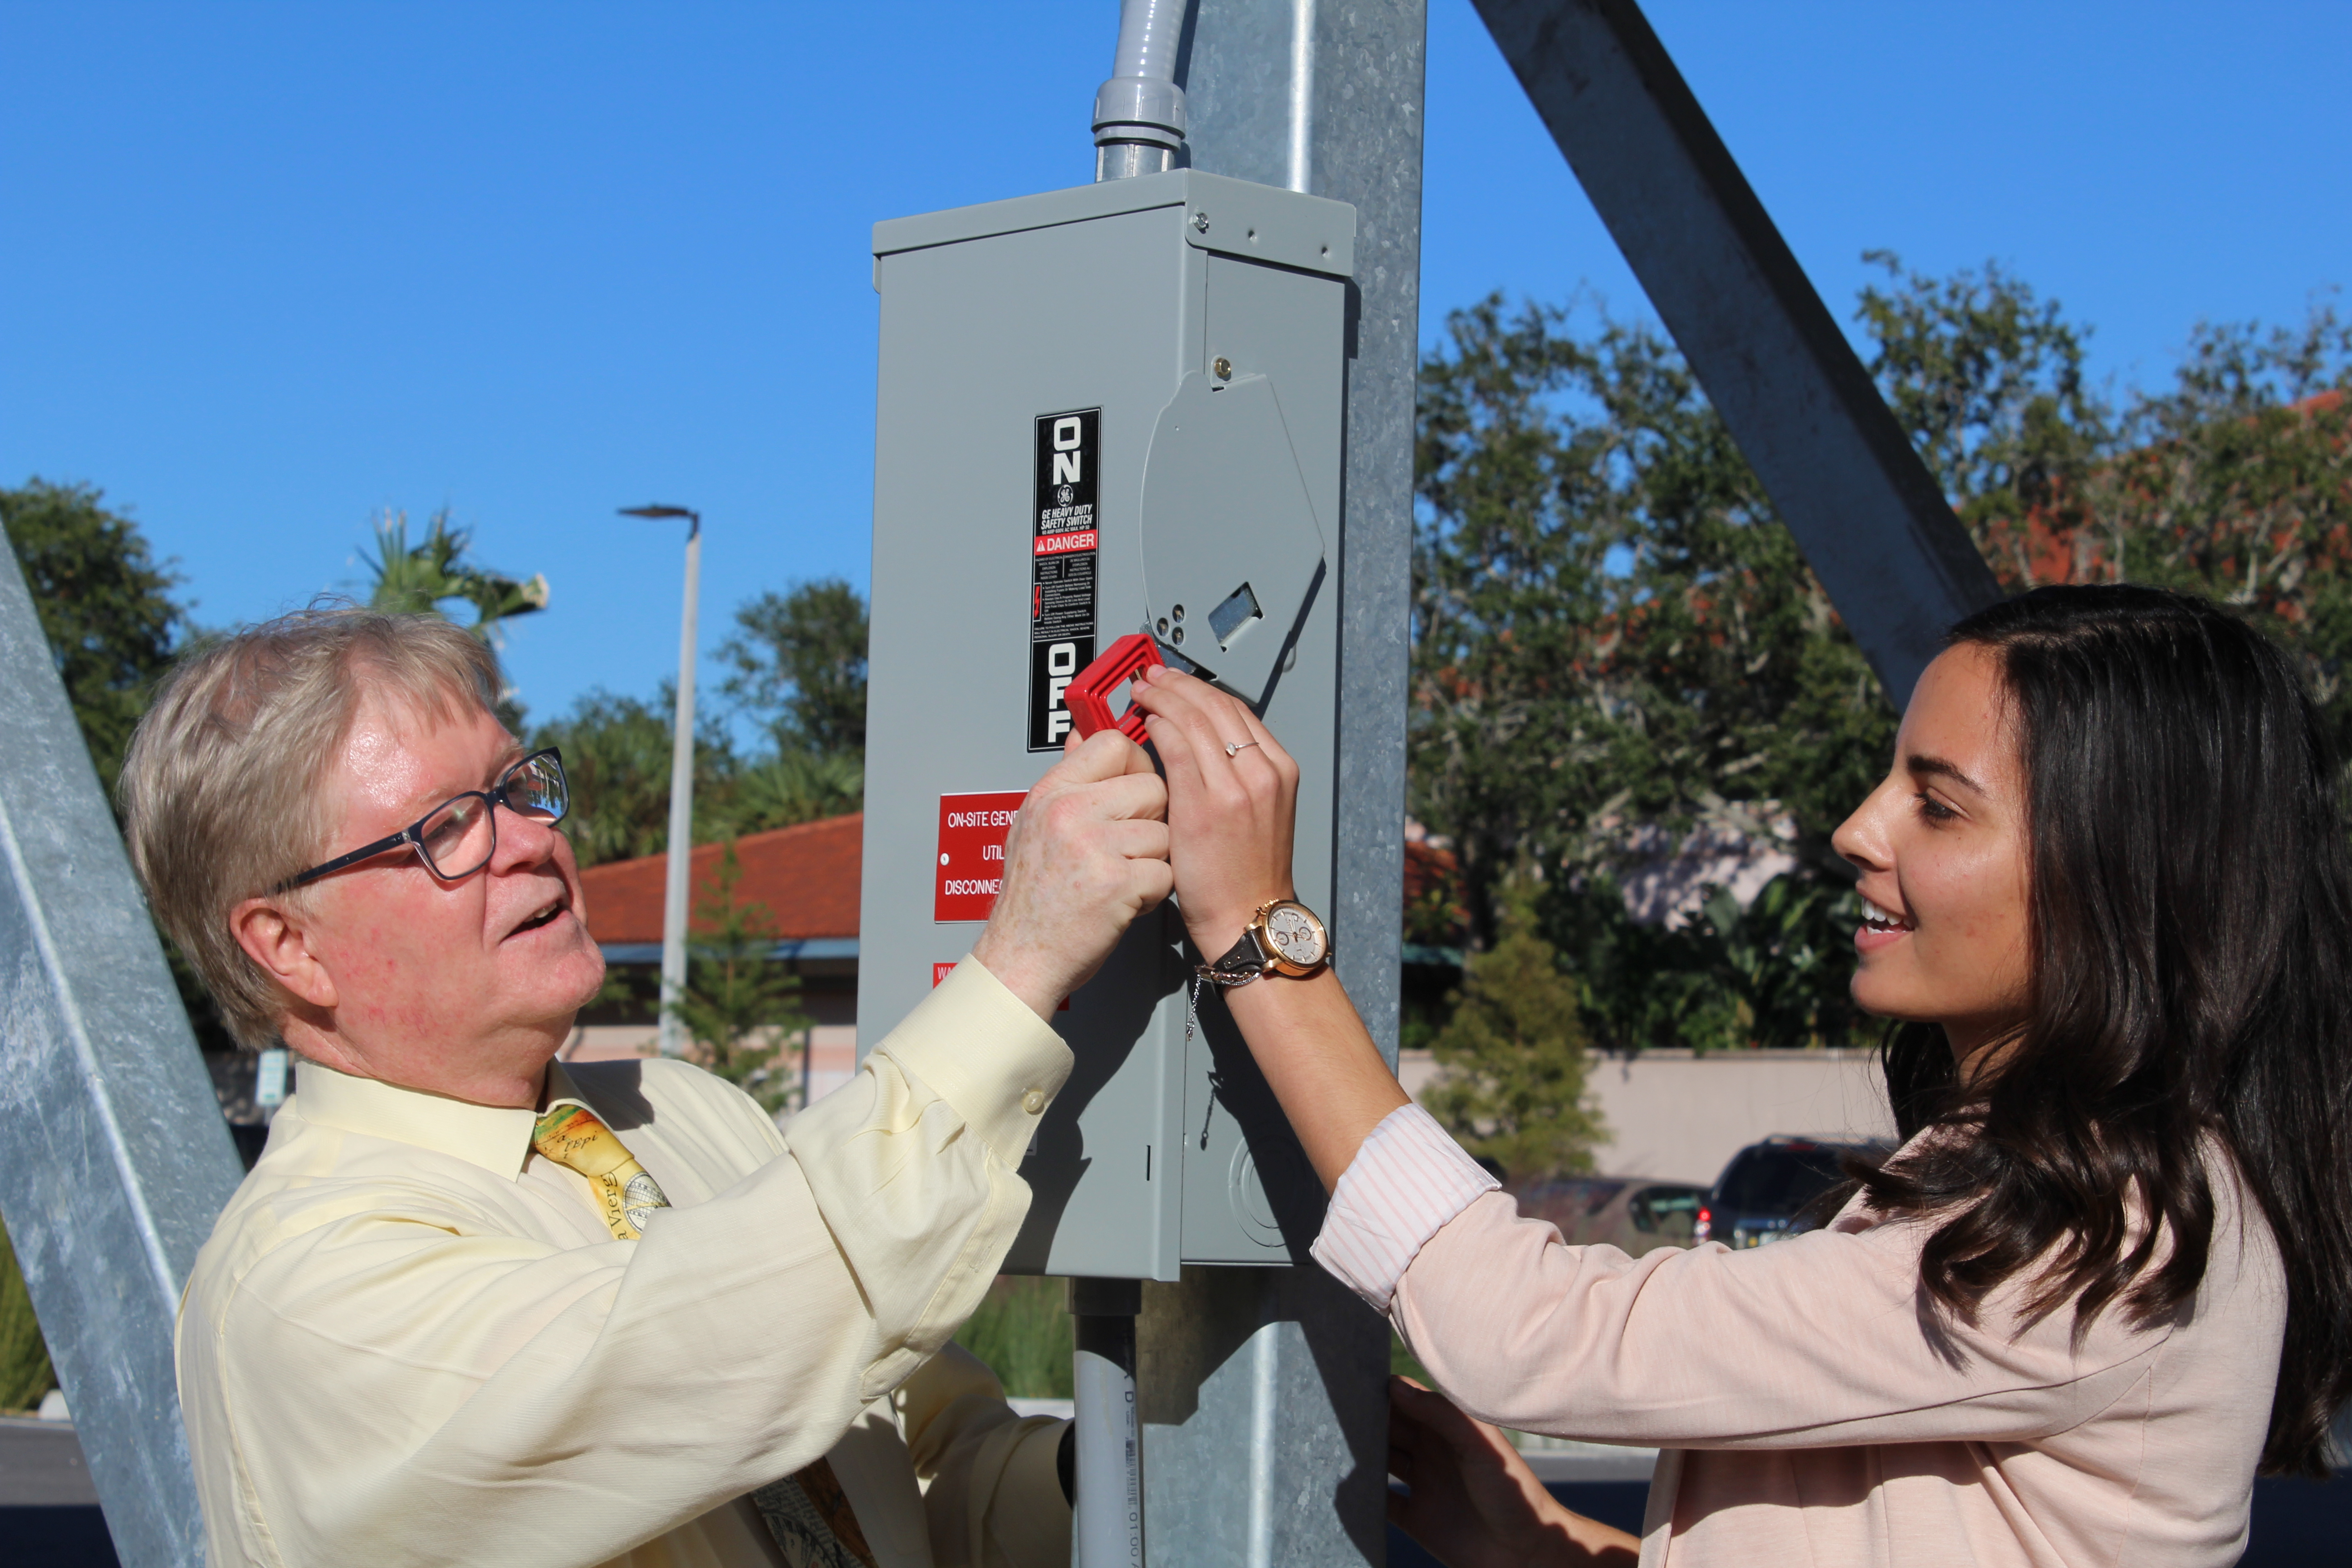 Campus powers up new 40 kilowatt solar array carport